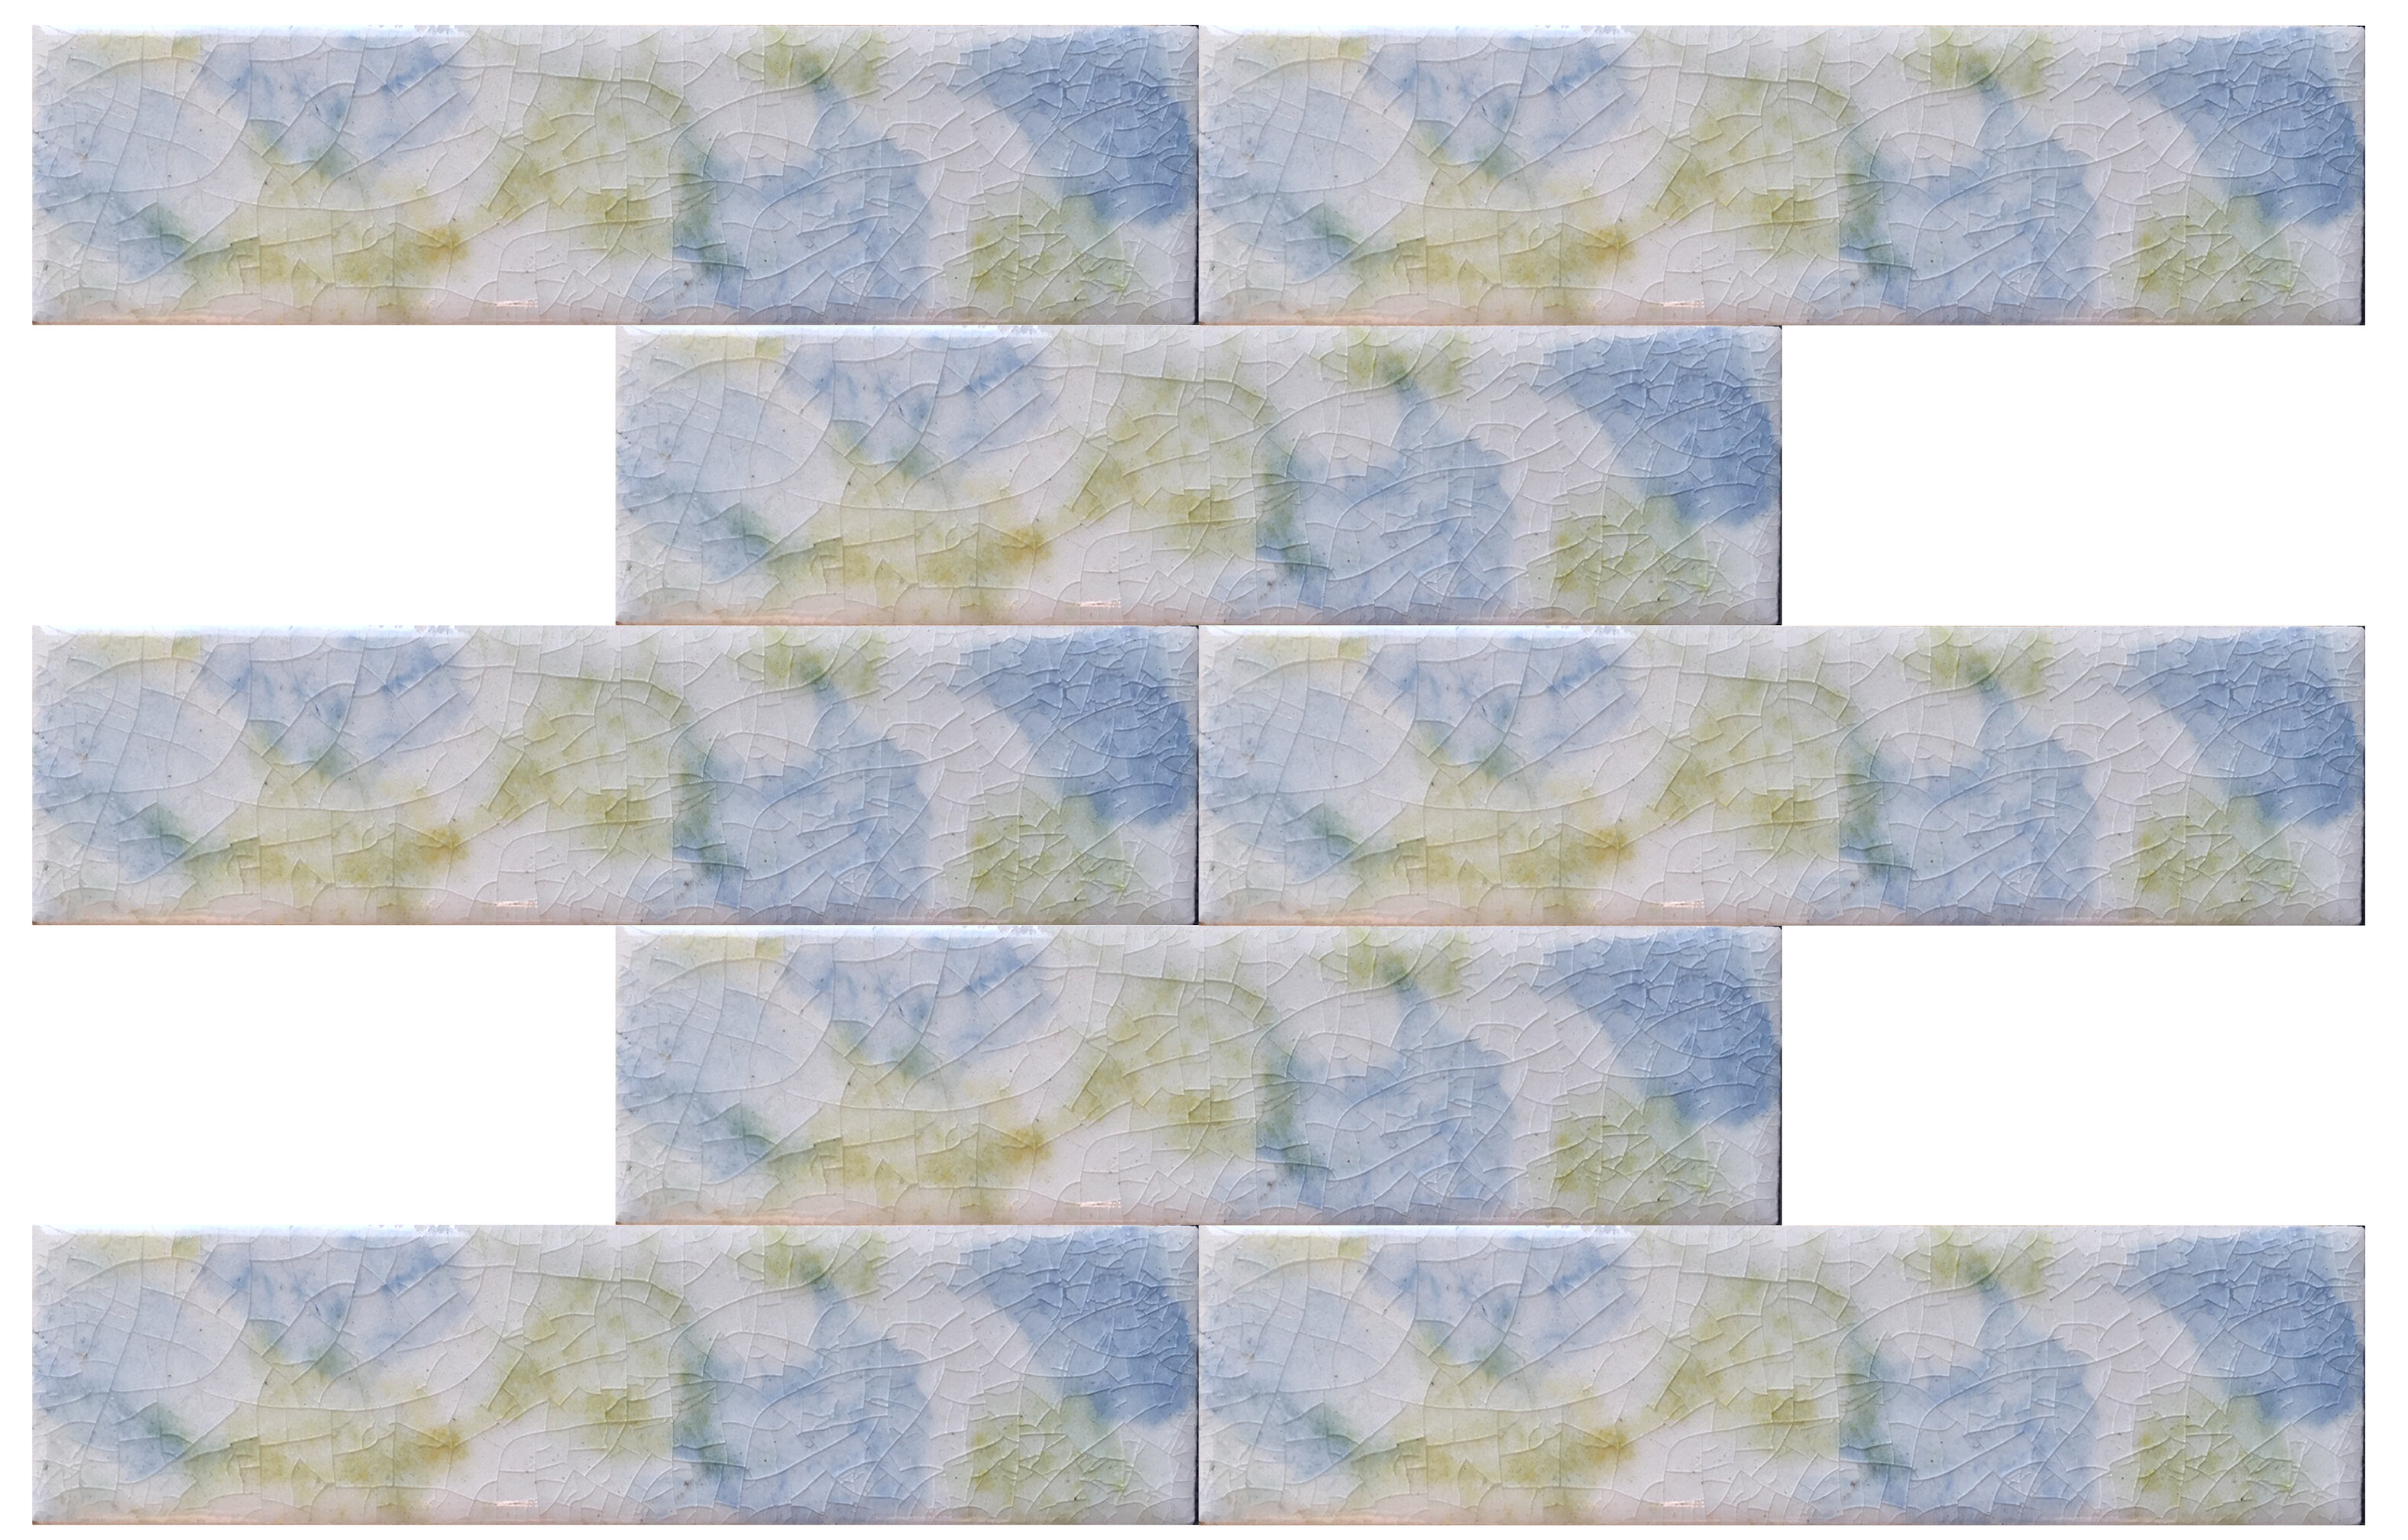 Victorian Fireplace Tile 1 5 X 6 Ceramic Subway In Cloudy Sky